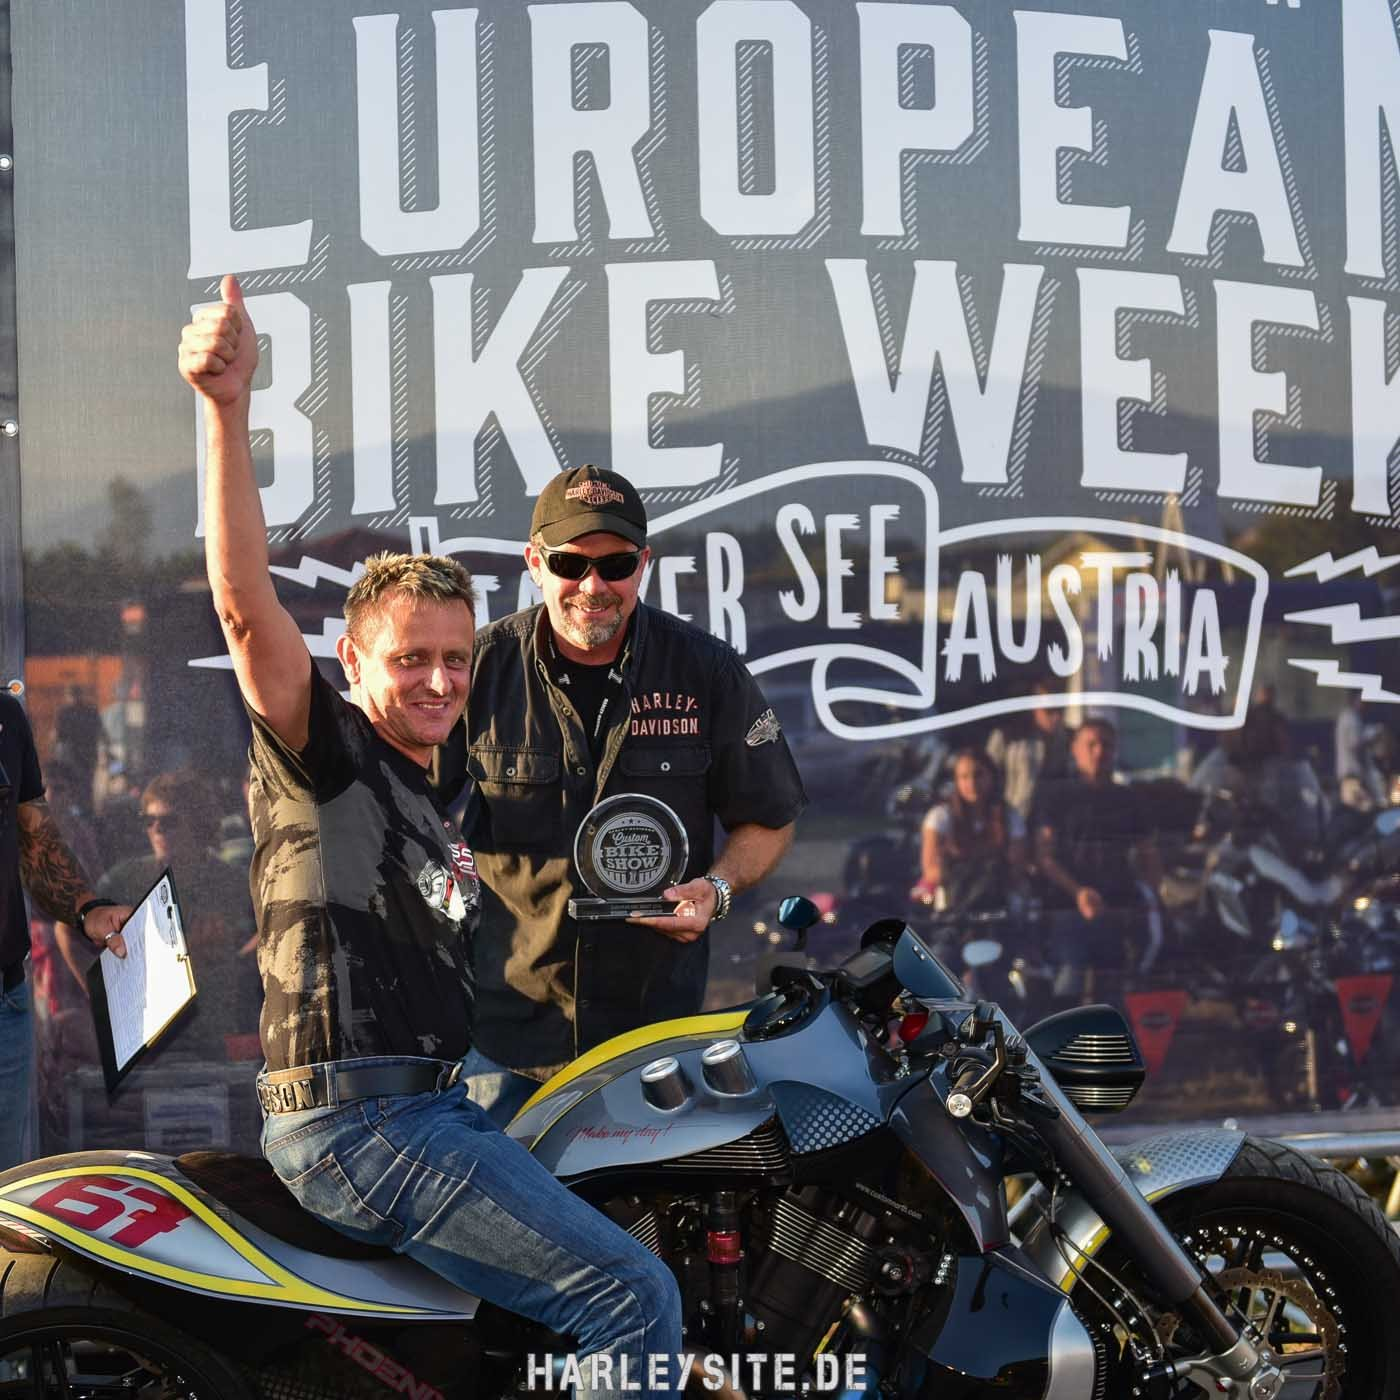 European-Bike-Week-0855